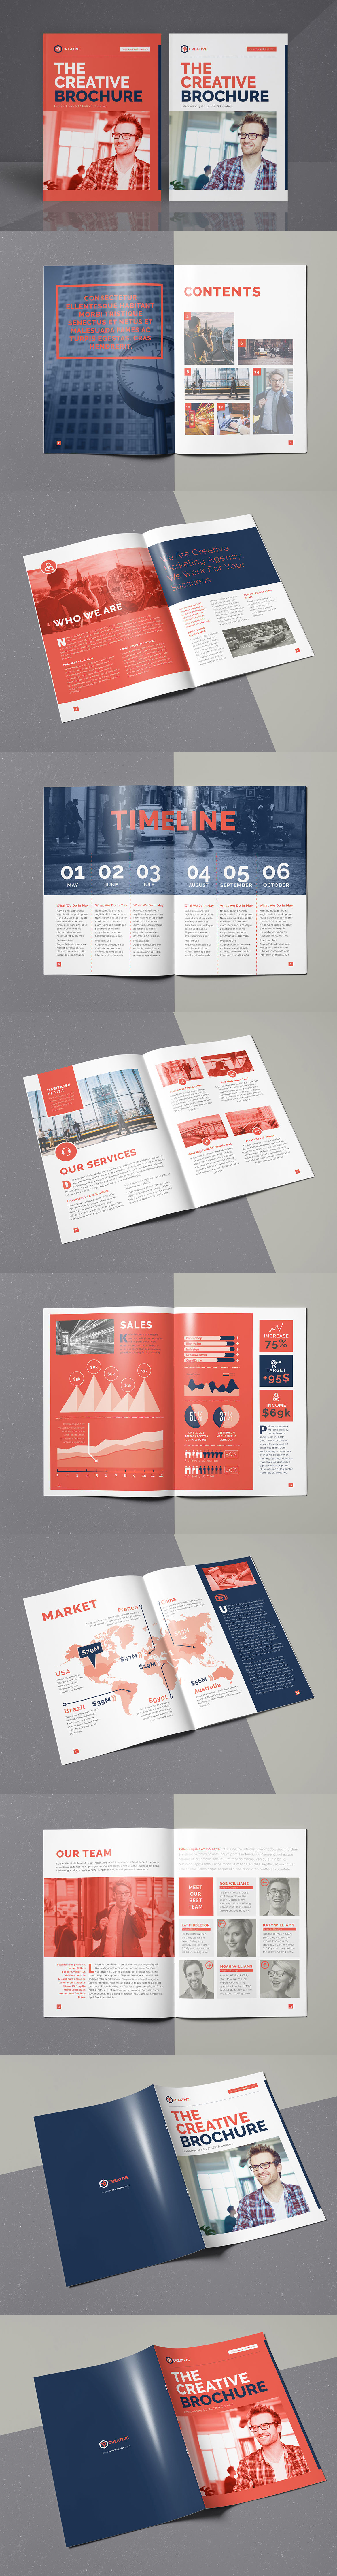 The Creative Brochure 16 Pages A4 Template InDesign INDD | art ...